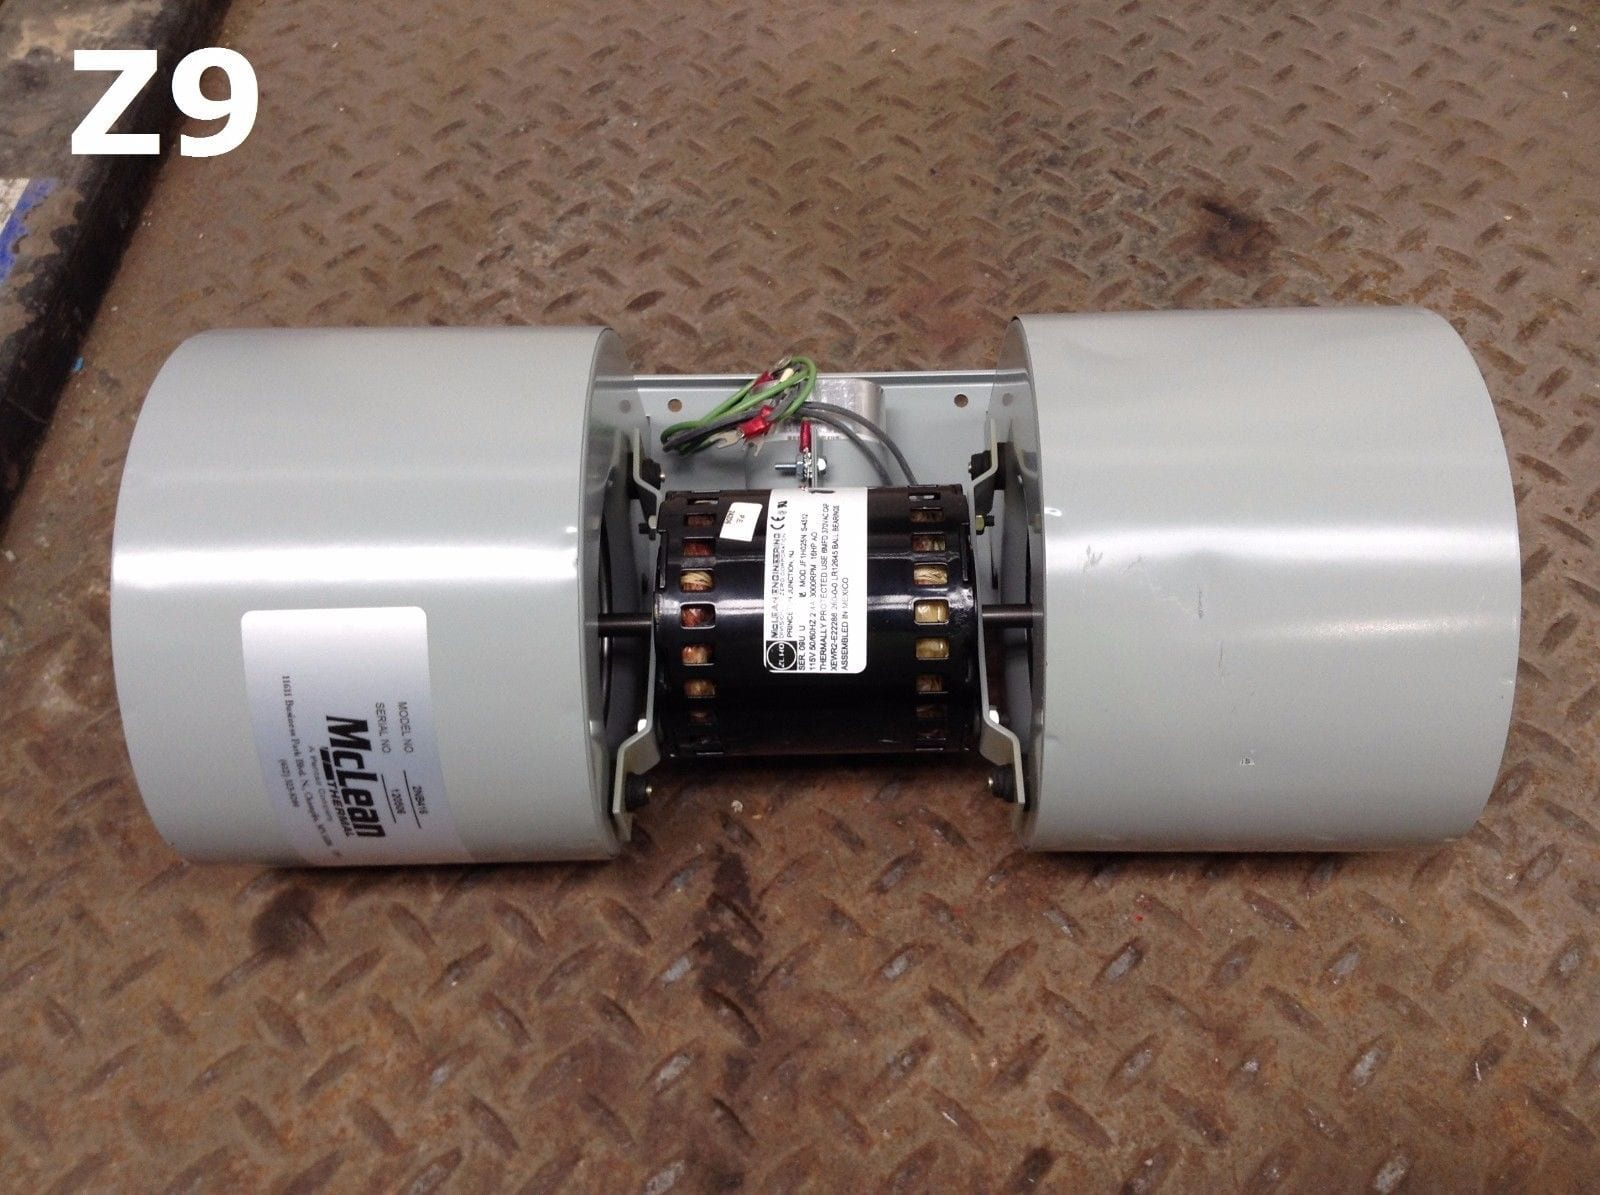 Pentair mclean jf1h025n air conditioner 2nb416 dual blower for Dc motor air conditioner